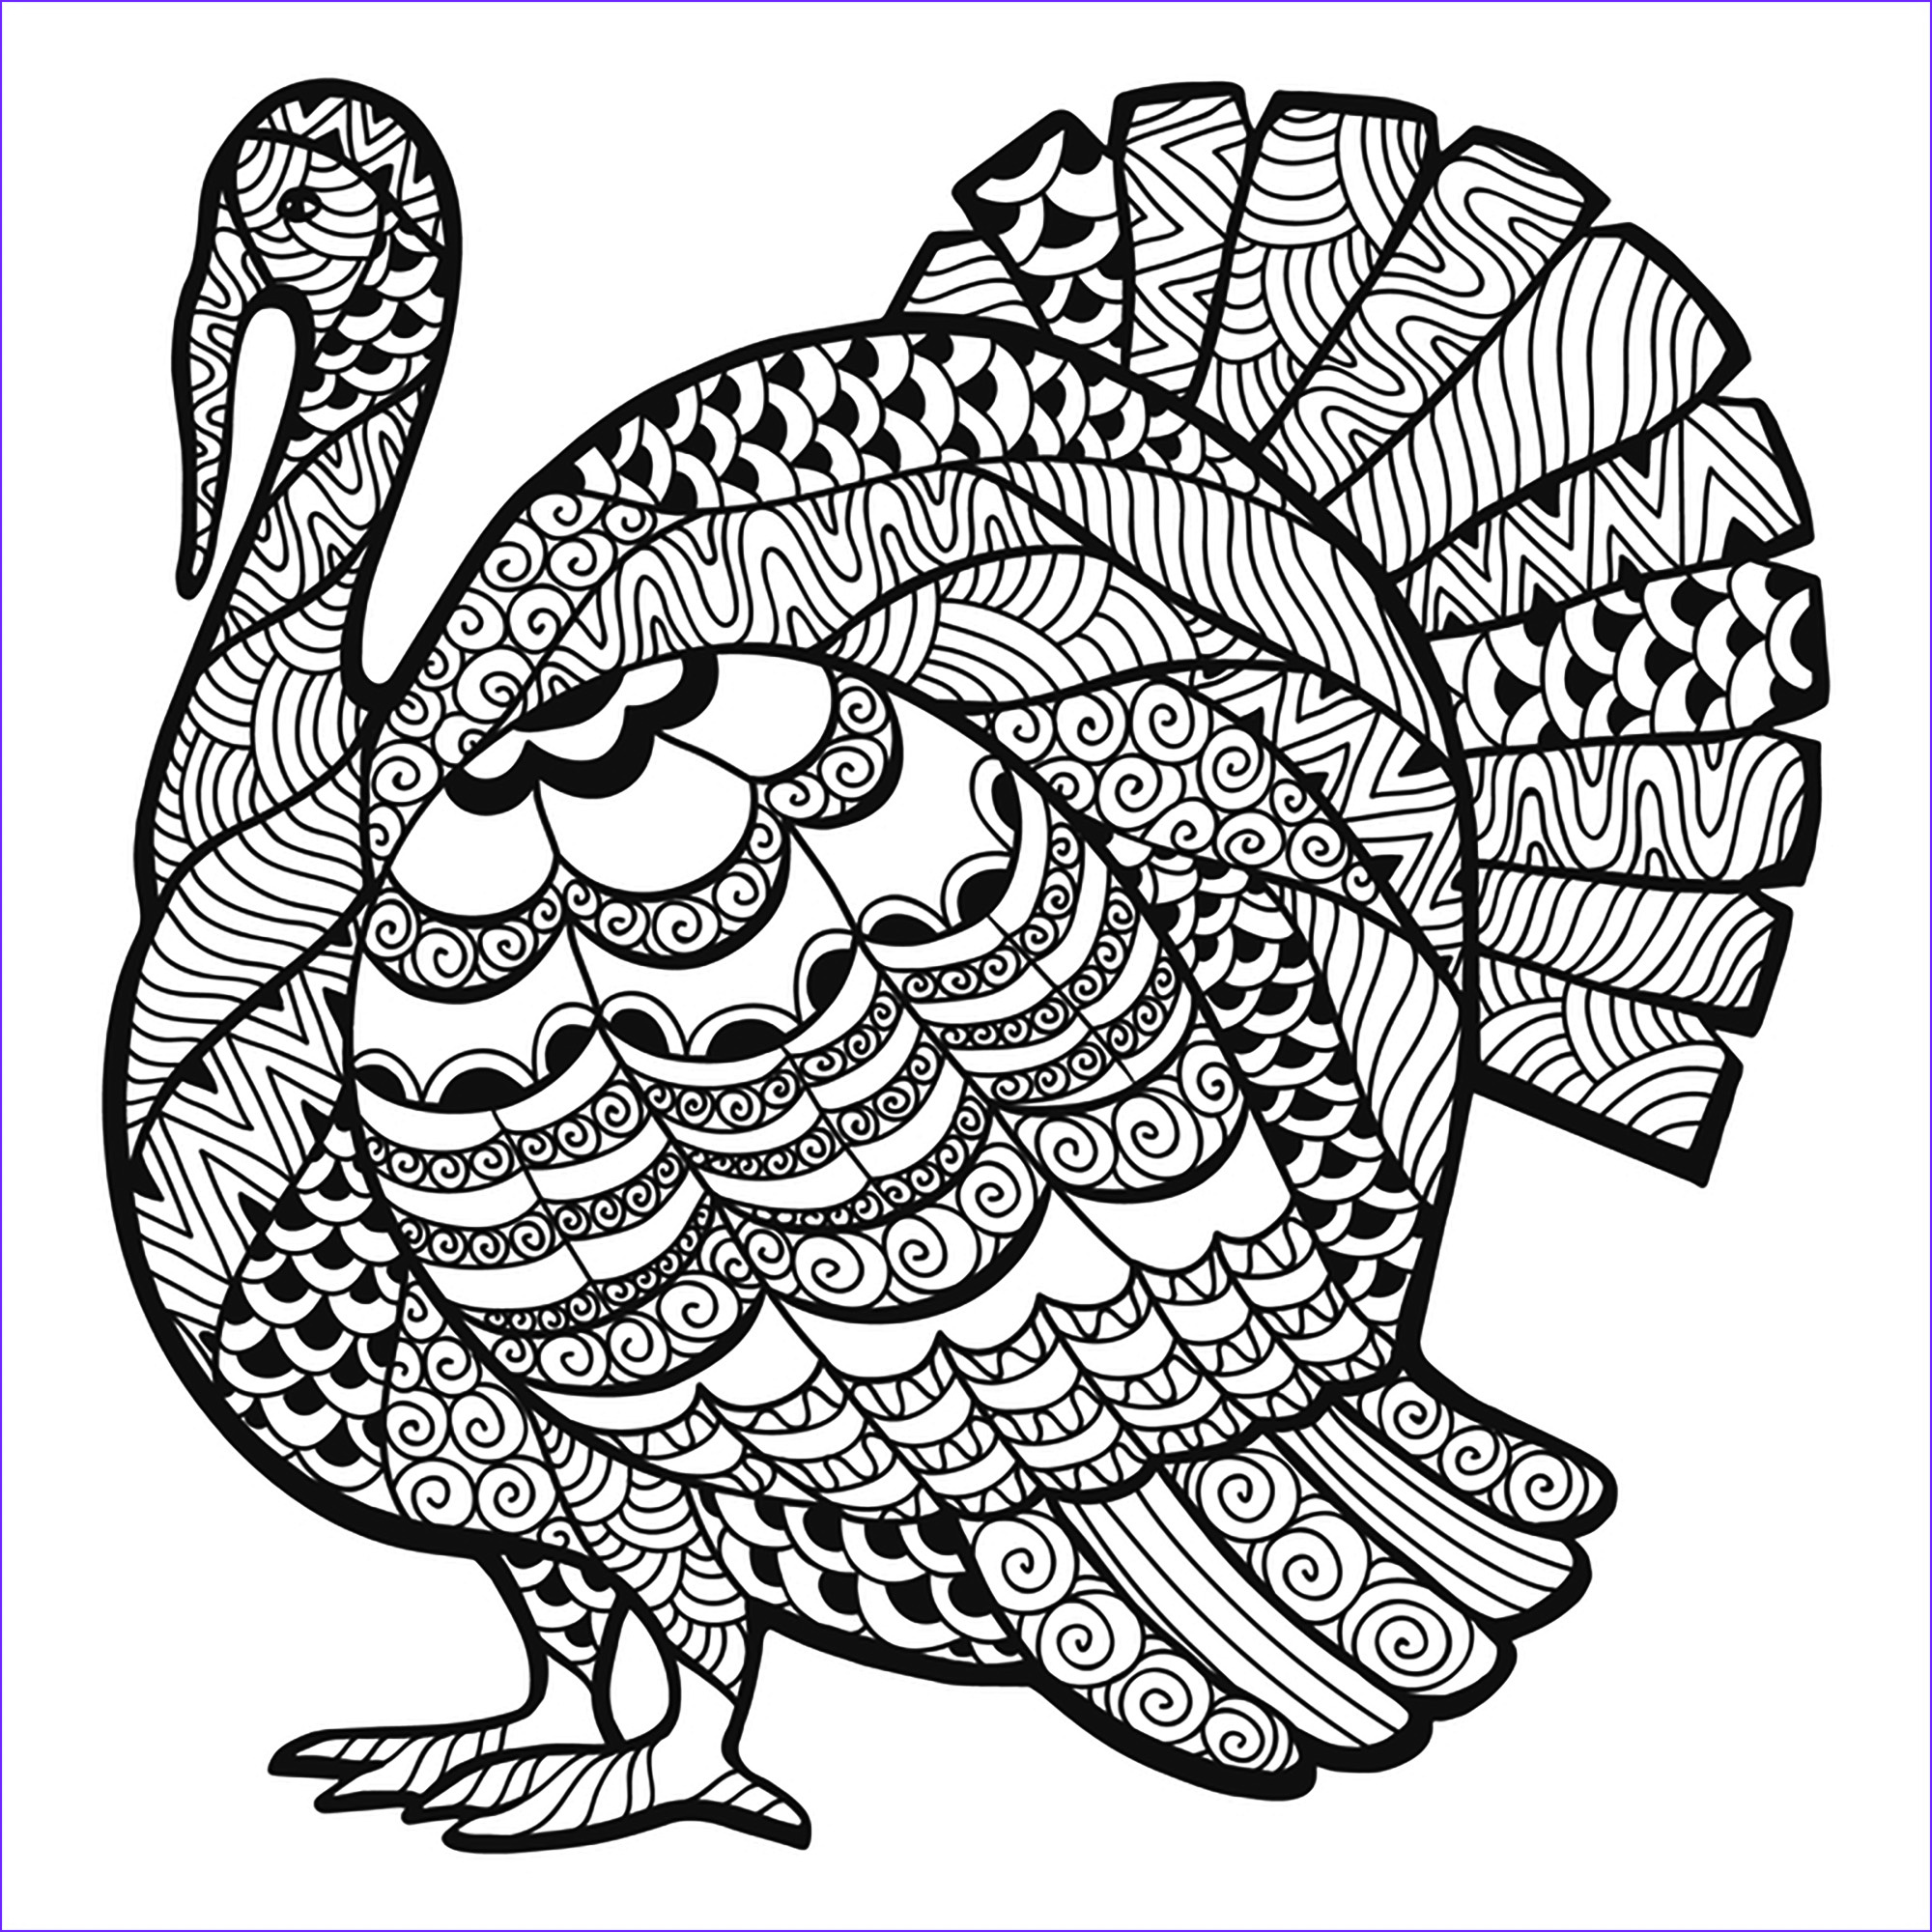 Thanksgiving Coloring Pages for Adults Elegant Photos Thanksgiving Coloring Pages for Adults Coloring Home